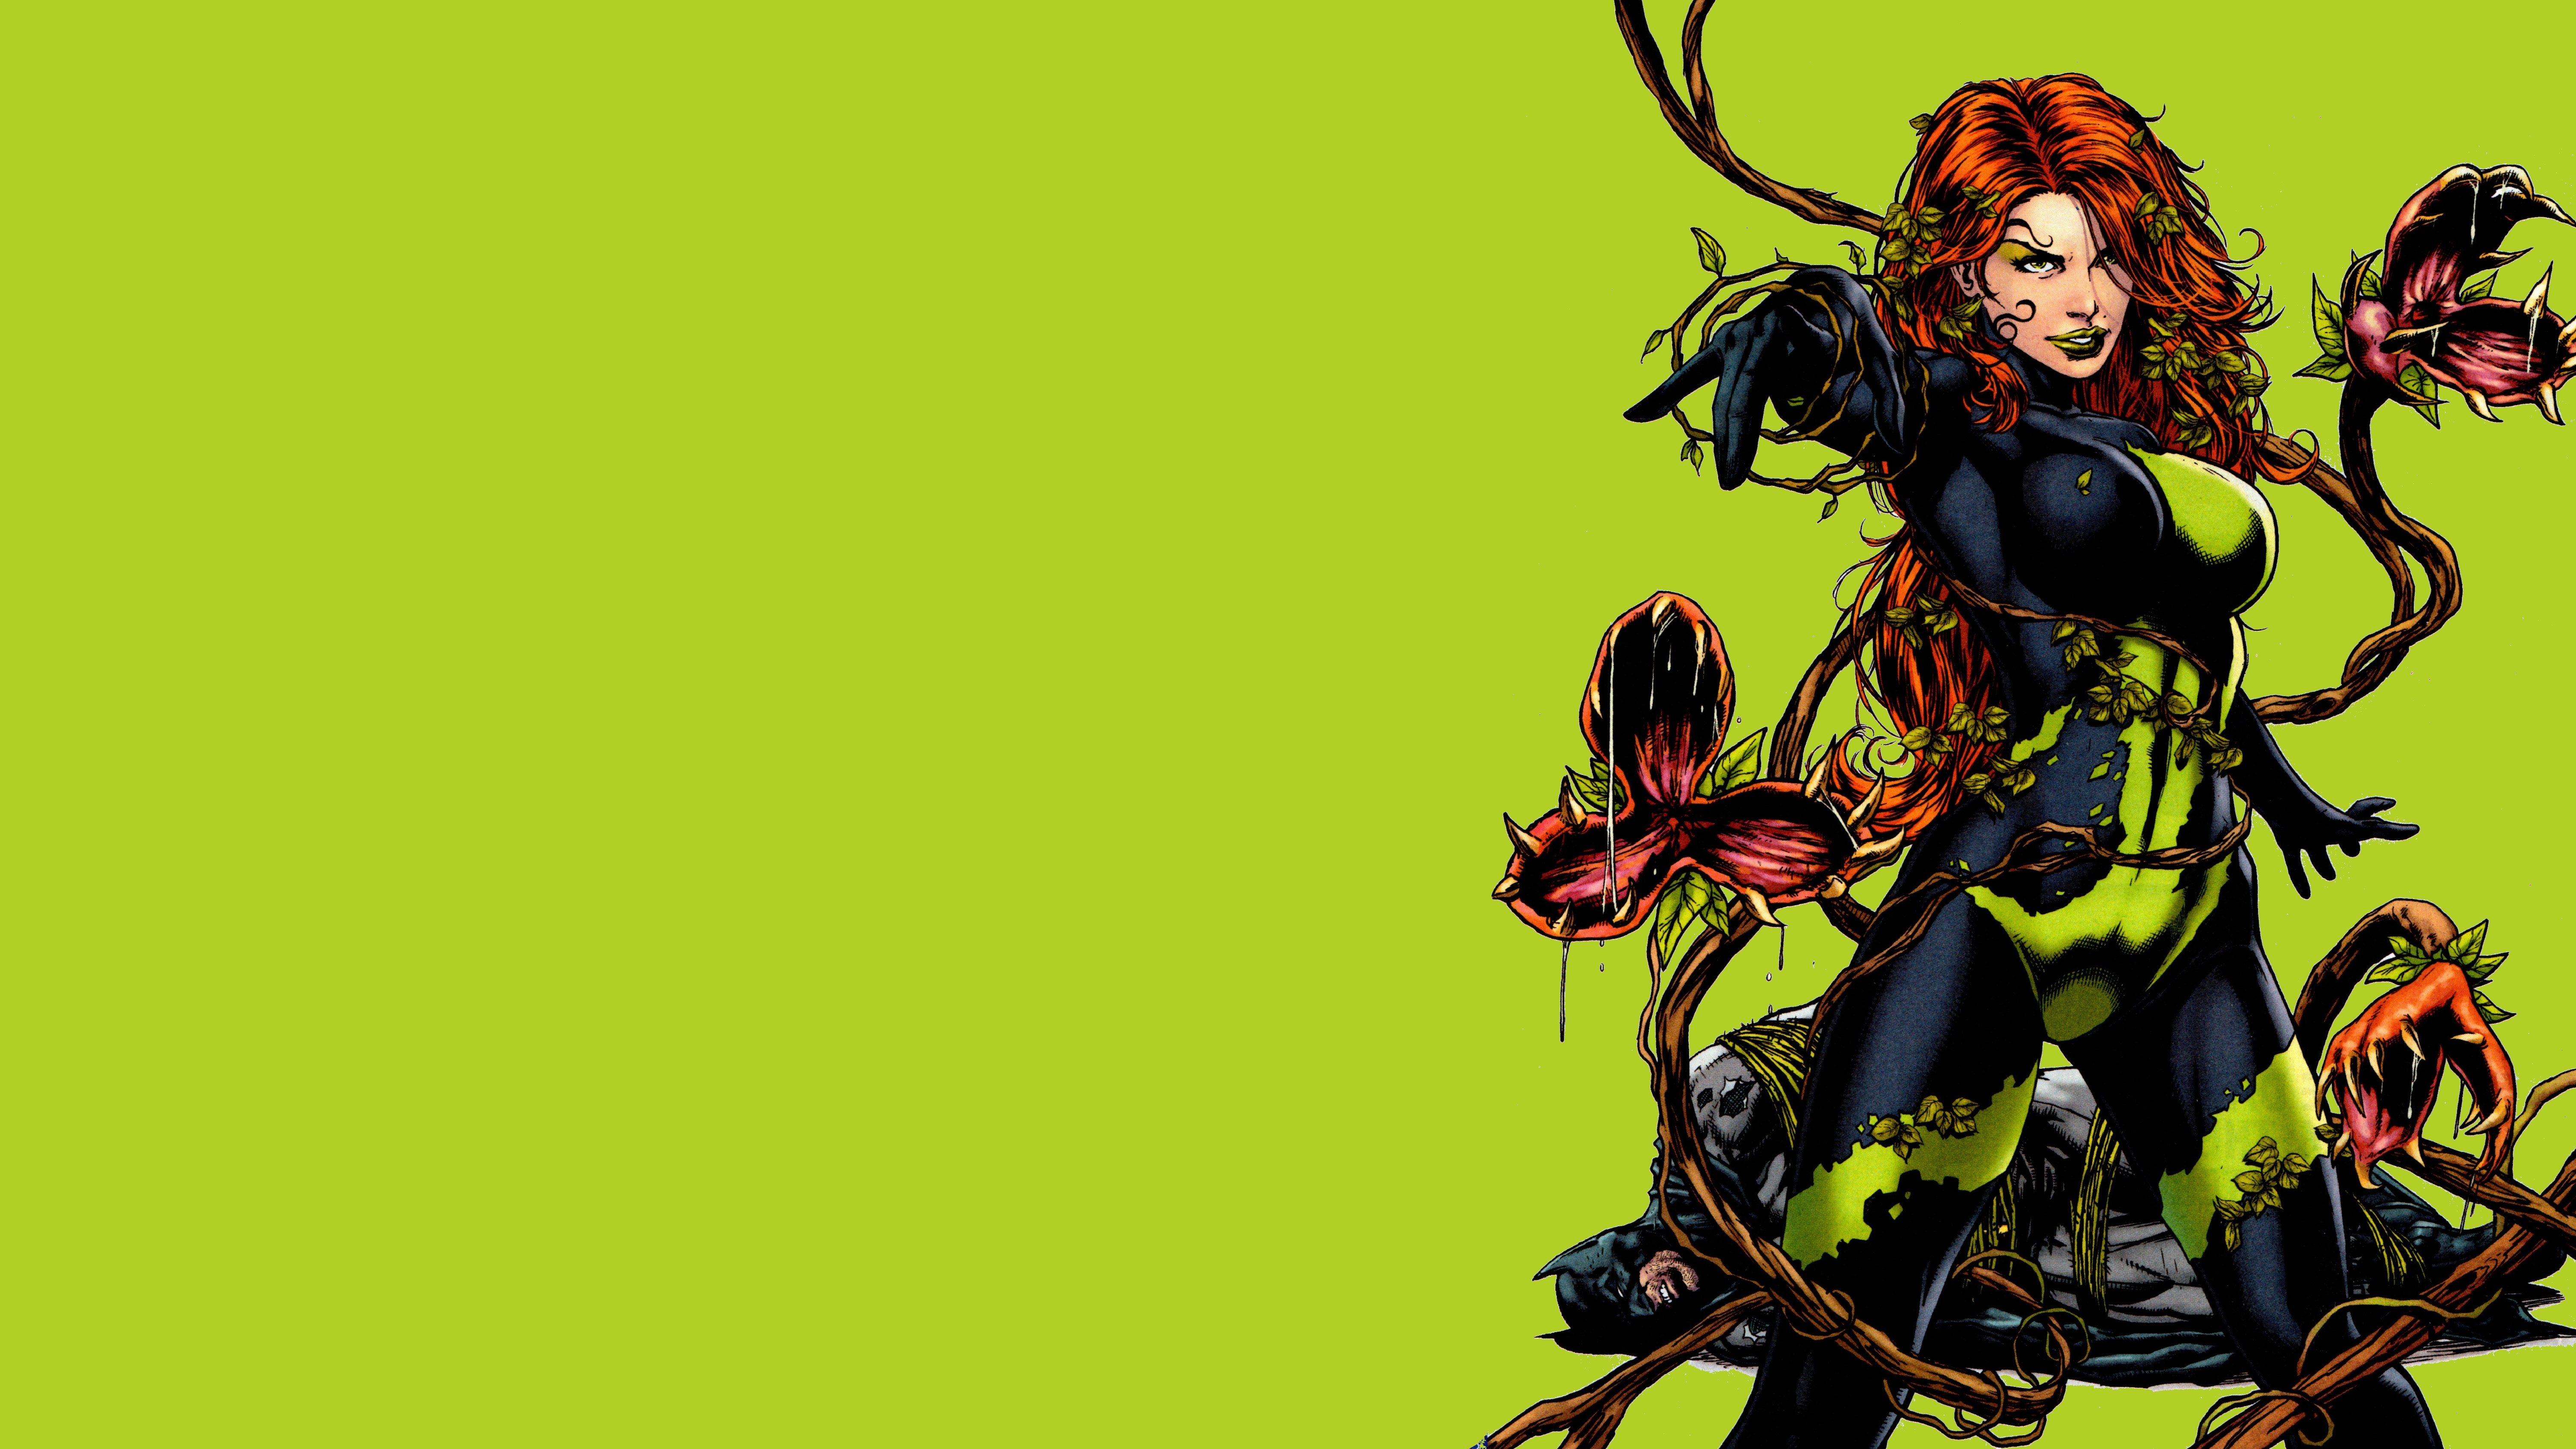 Poison Ivy Wallpaper Hd Wallpapersafari HD Wallpapers Download Free Images Wallpaper [1000image.com]